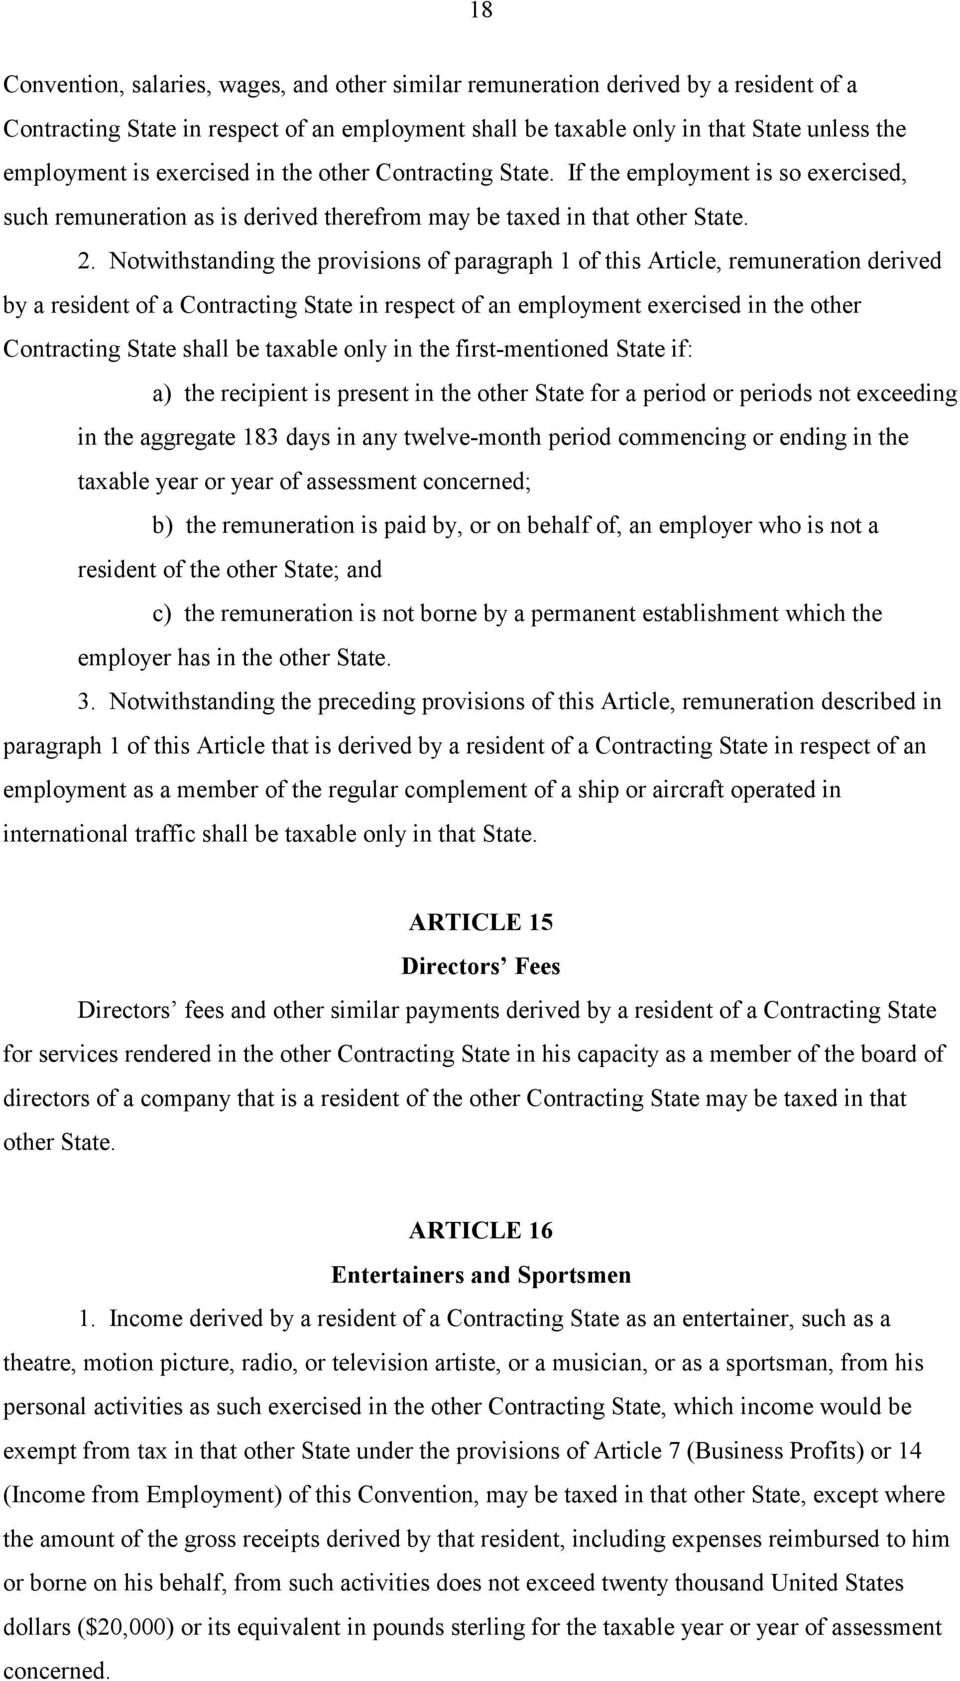 Notwithstanding the provisions of paragraph 1 of this Article, remuneration derived by a resident of a Contracting State in respect of an employment exercised in the other Contracting State shall be